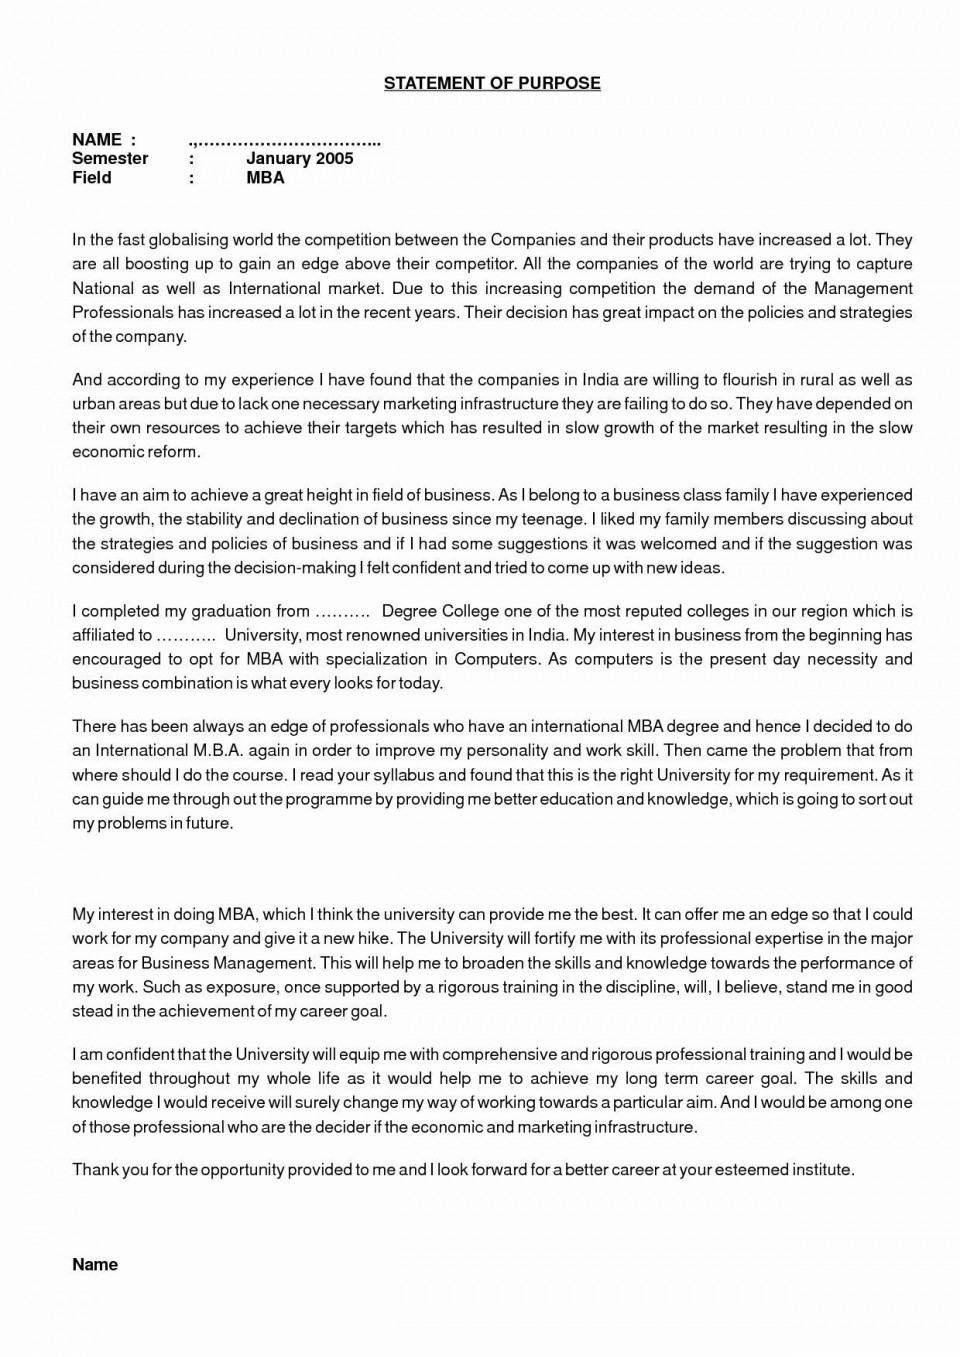 009 Essay Examples In Life For Mba Poemsrom Co Resume Template Inspirational Of Harvard Referenced Format Best Bus How Will College Help Me Achieve My On Achieving Stunning A Goal Narrative Example 960